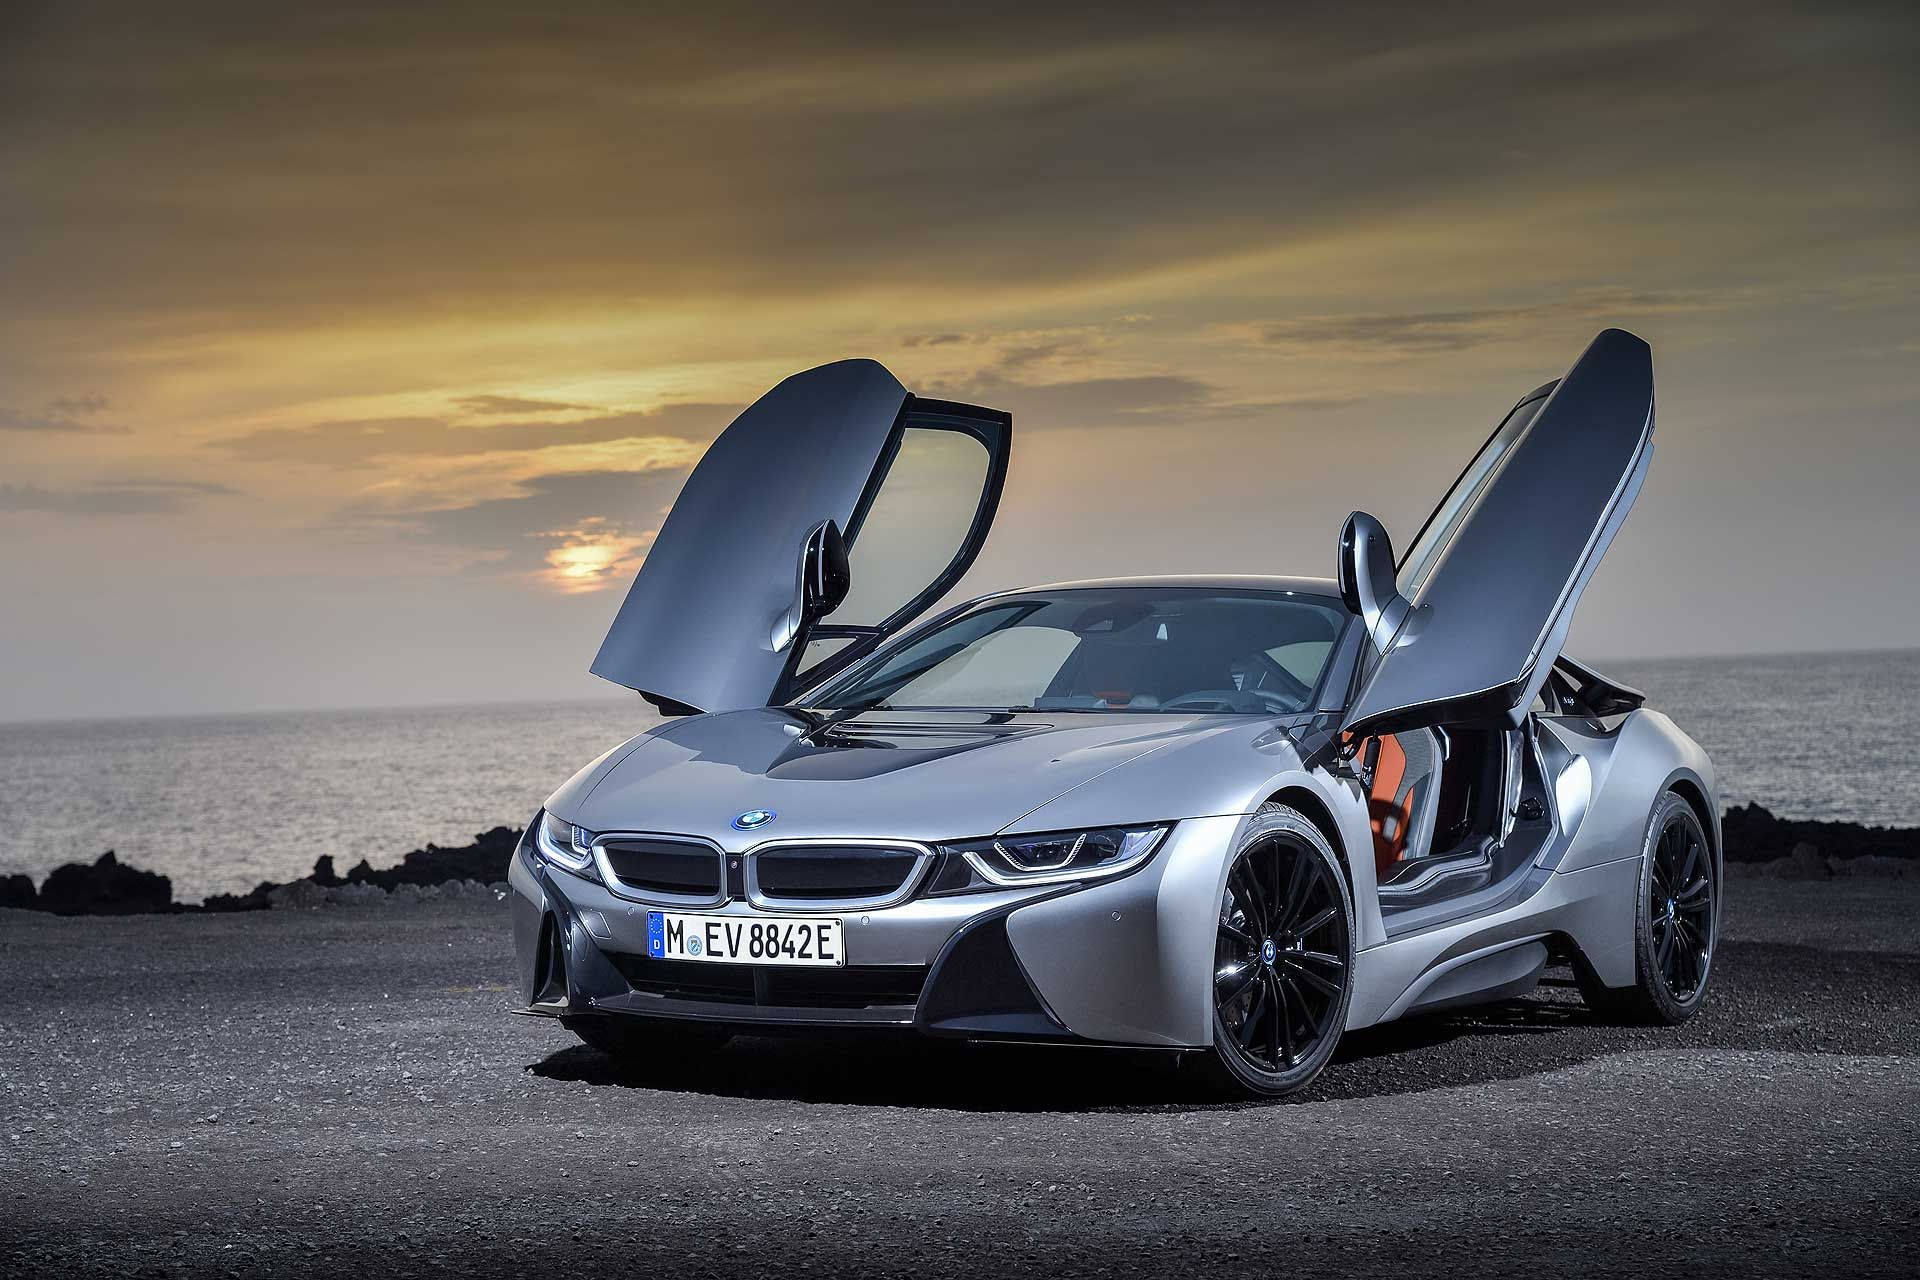 BMW Updates Its Sports Car Of The Future With The New i8 Coupé